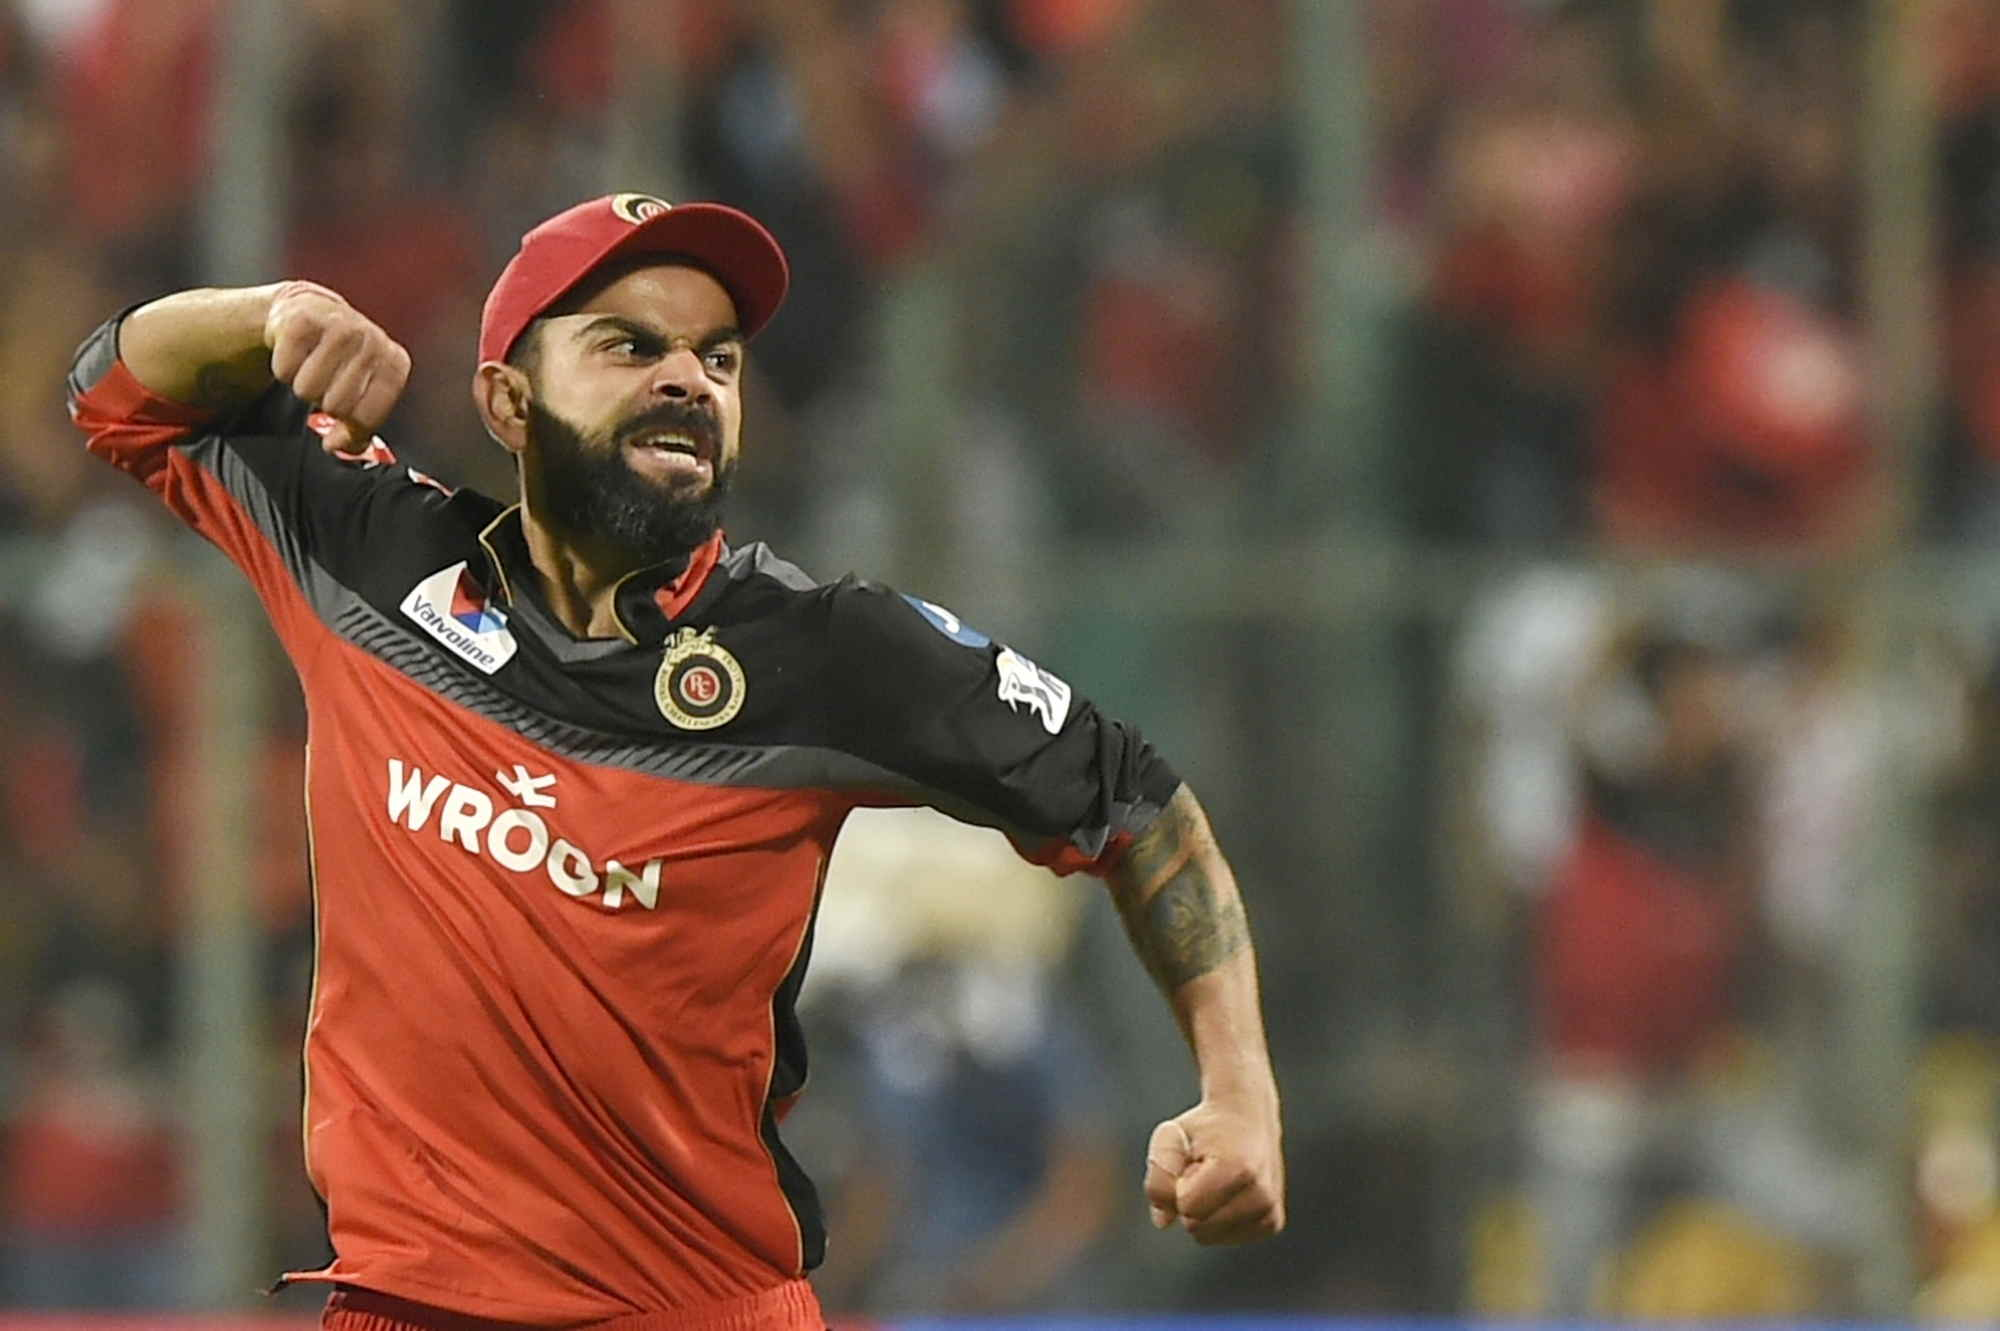 Sunday's match between RCB and KKR will be the first match of 2021 season to be played in the afternoon